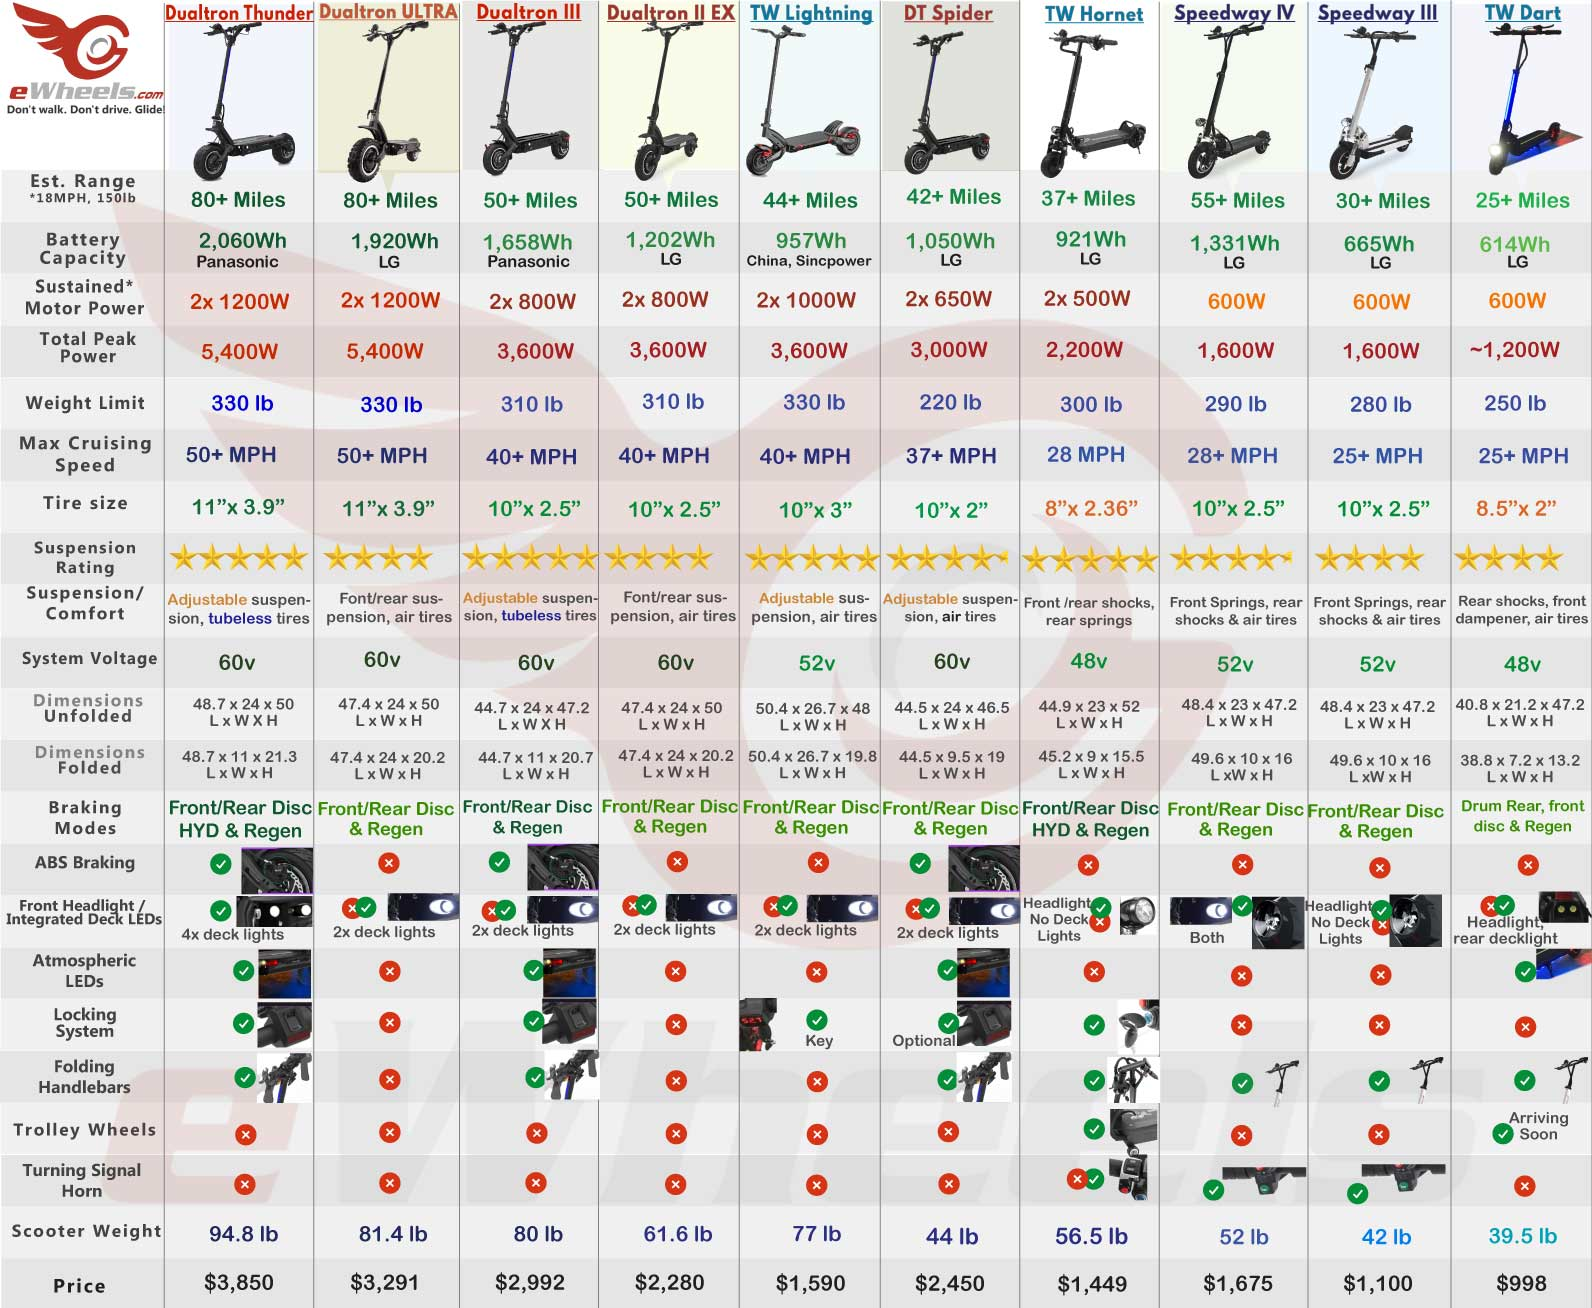 Electric Scooter Comparison Chart Table of Specifications, Dualtron, Speedway, Turbowheel, Ninebot Inmotion, Thunder, Zero 10X, Zero 9, Dart, Hornet, Lightning